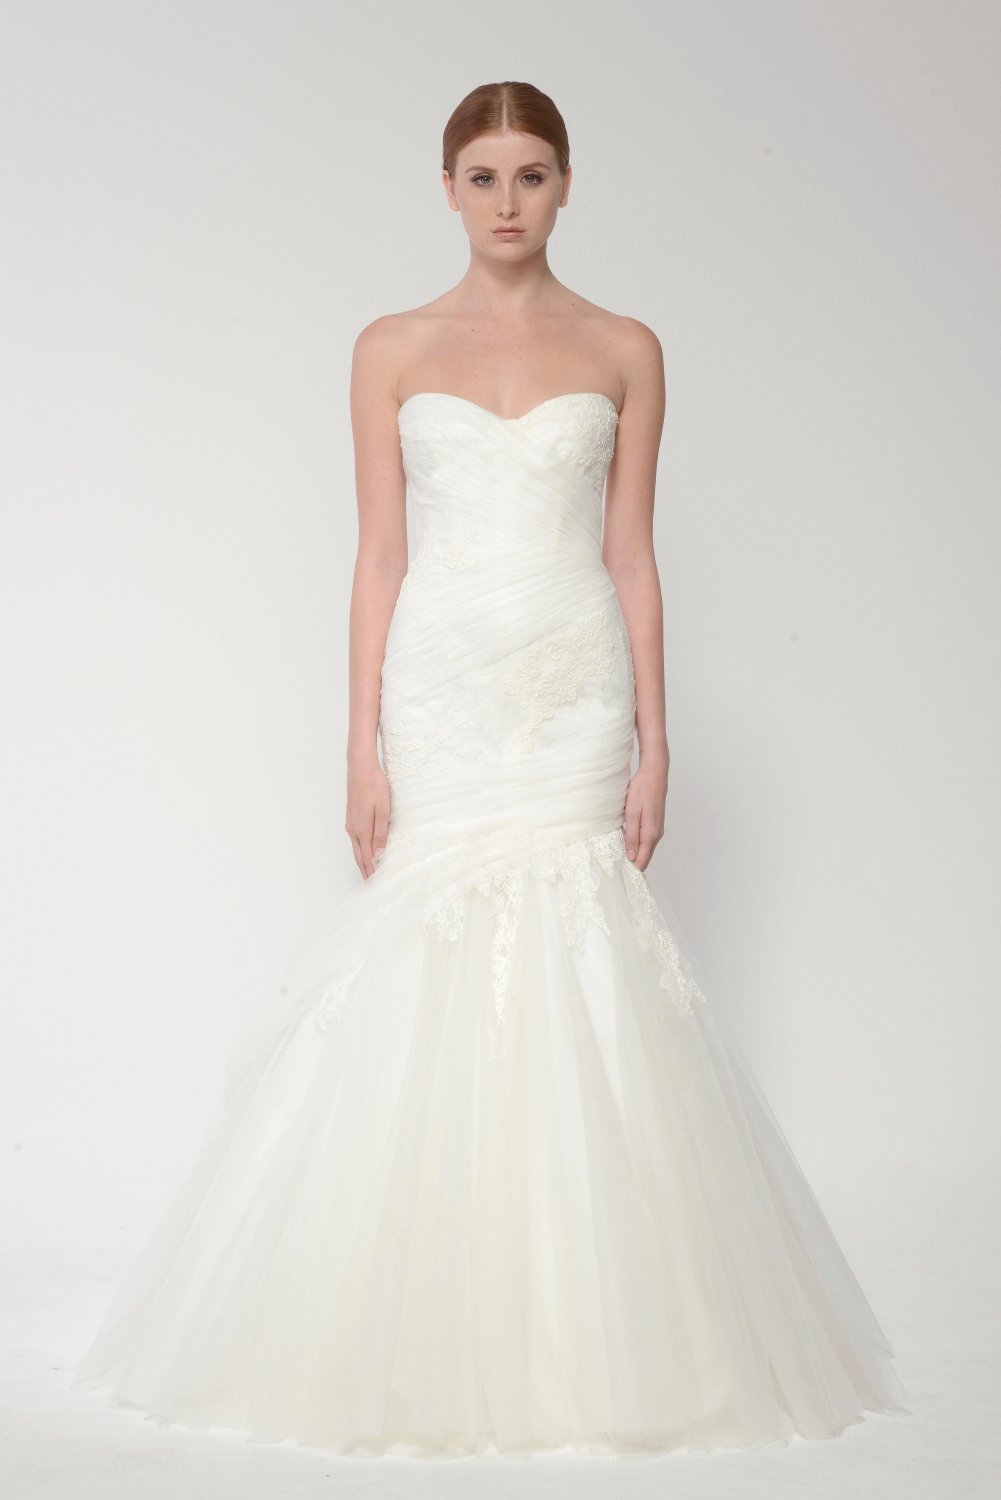 Monique Lhuillier Bliss Bridal Collection - BL 1401